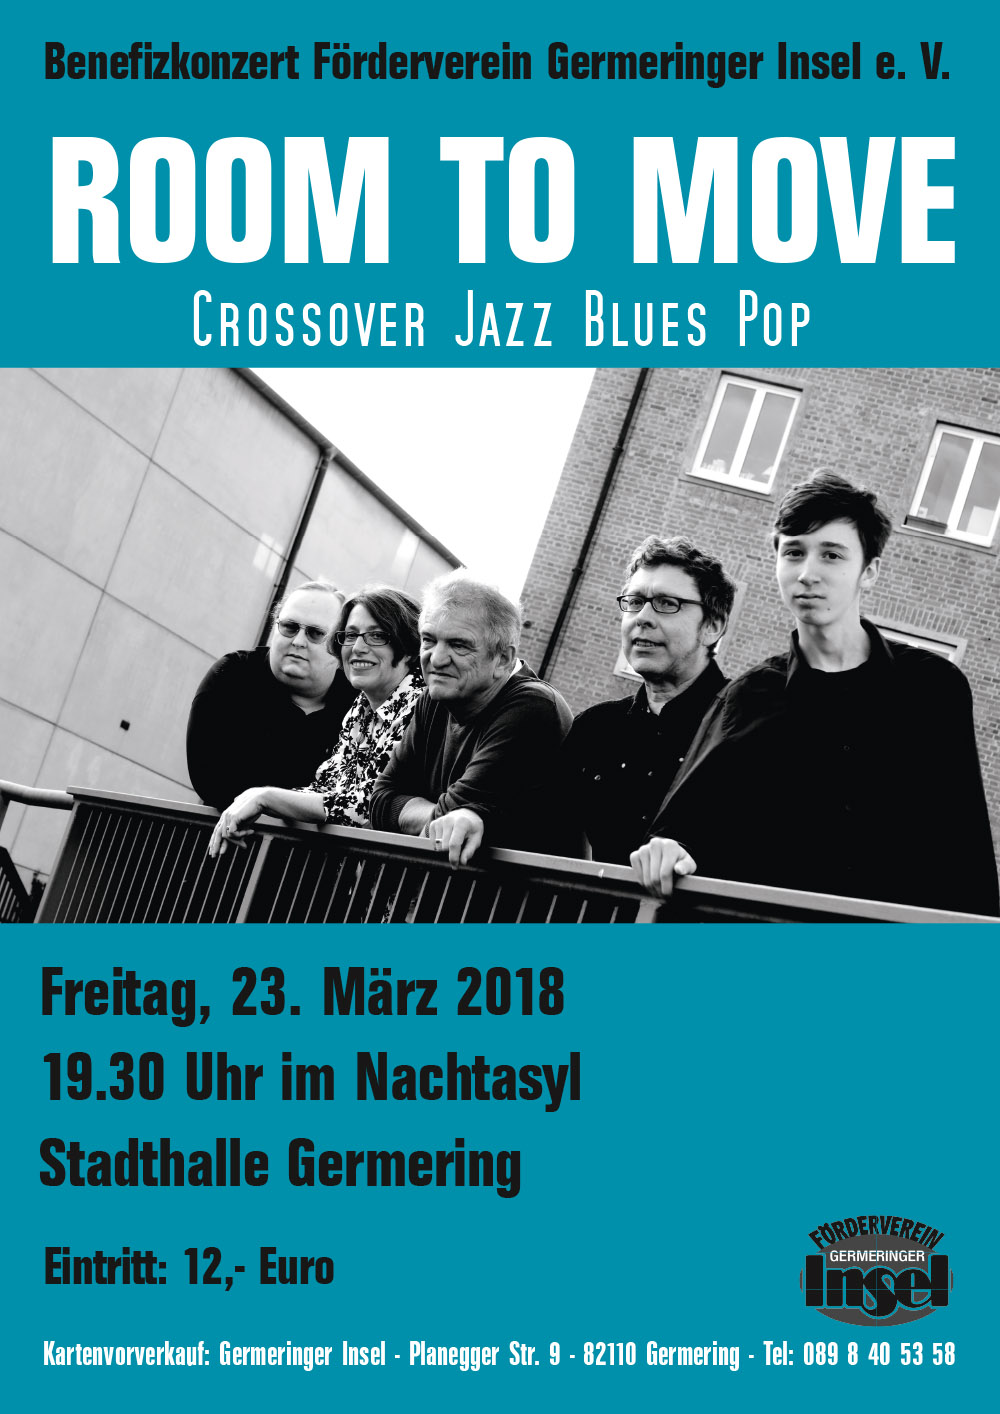 Benefizkonzert mit Room to Move